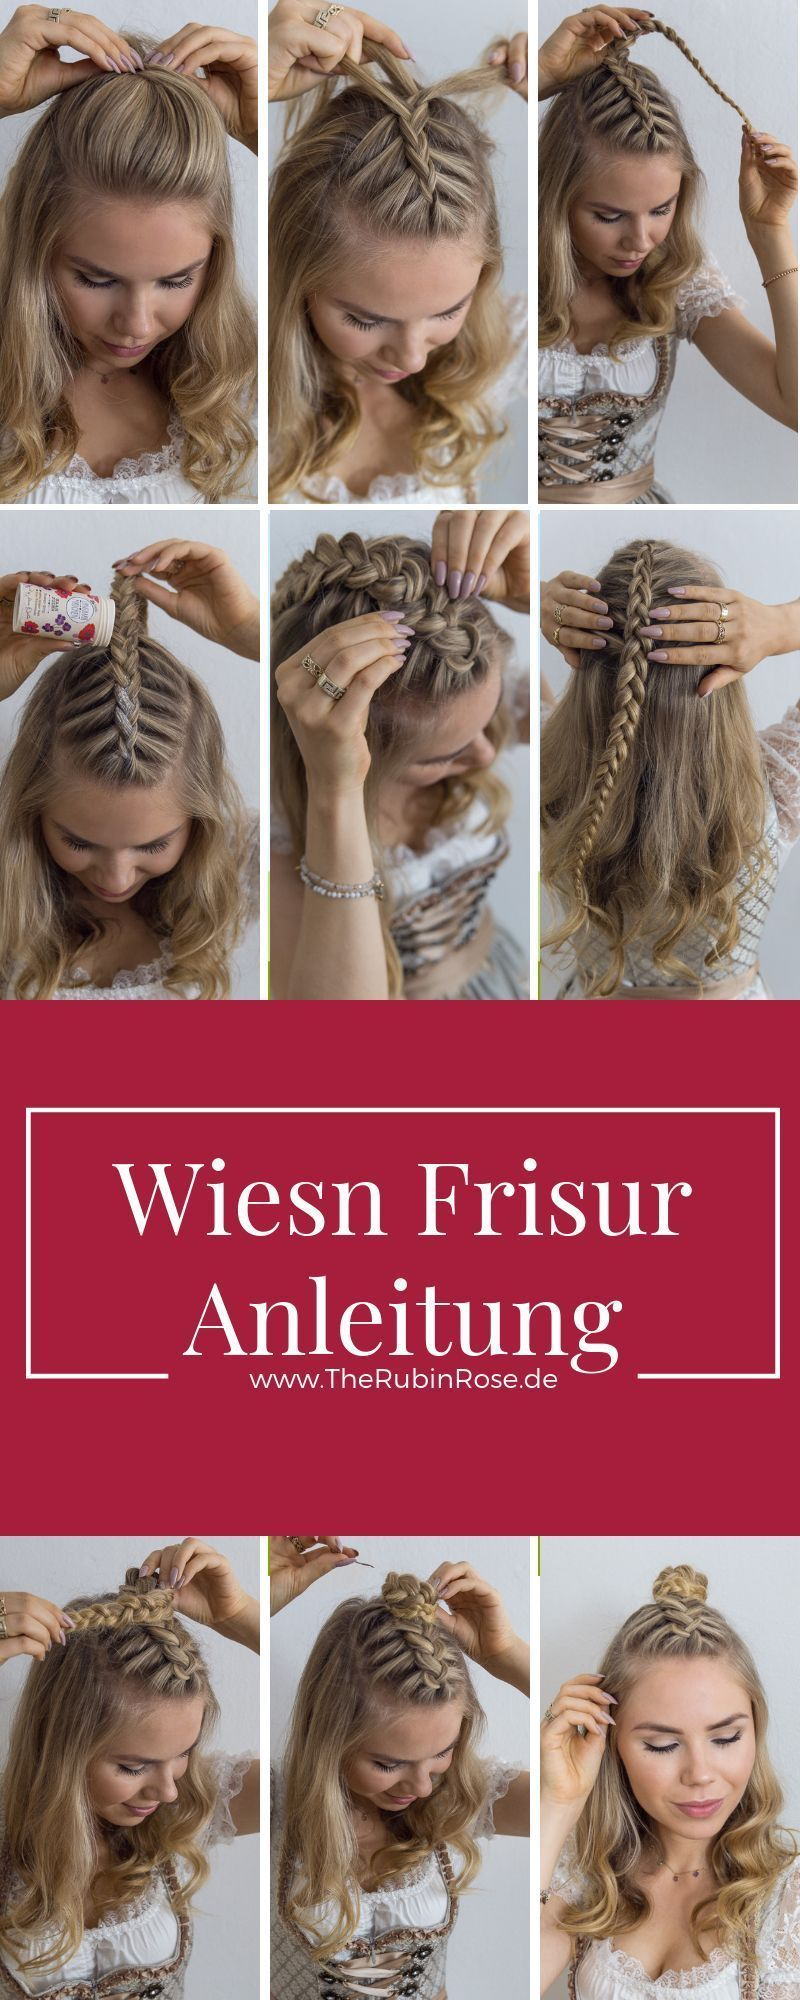 Dirndl Hairstyle Instructions For Medium Length Hair Cabelos In My Youtube Video Dirndl Hairsty In 2020 Medium Long Hair Medium Length Hair Styles Hair Lengths